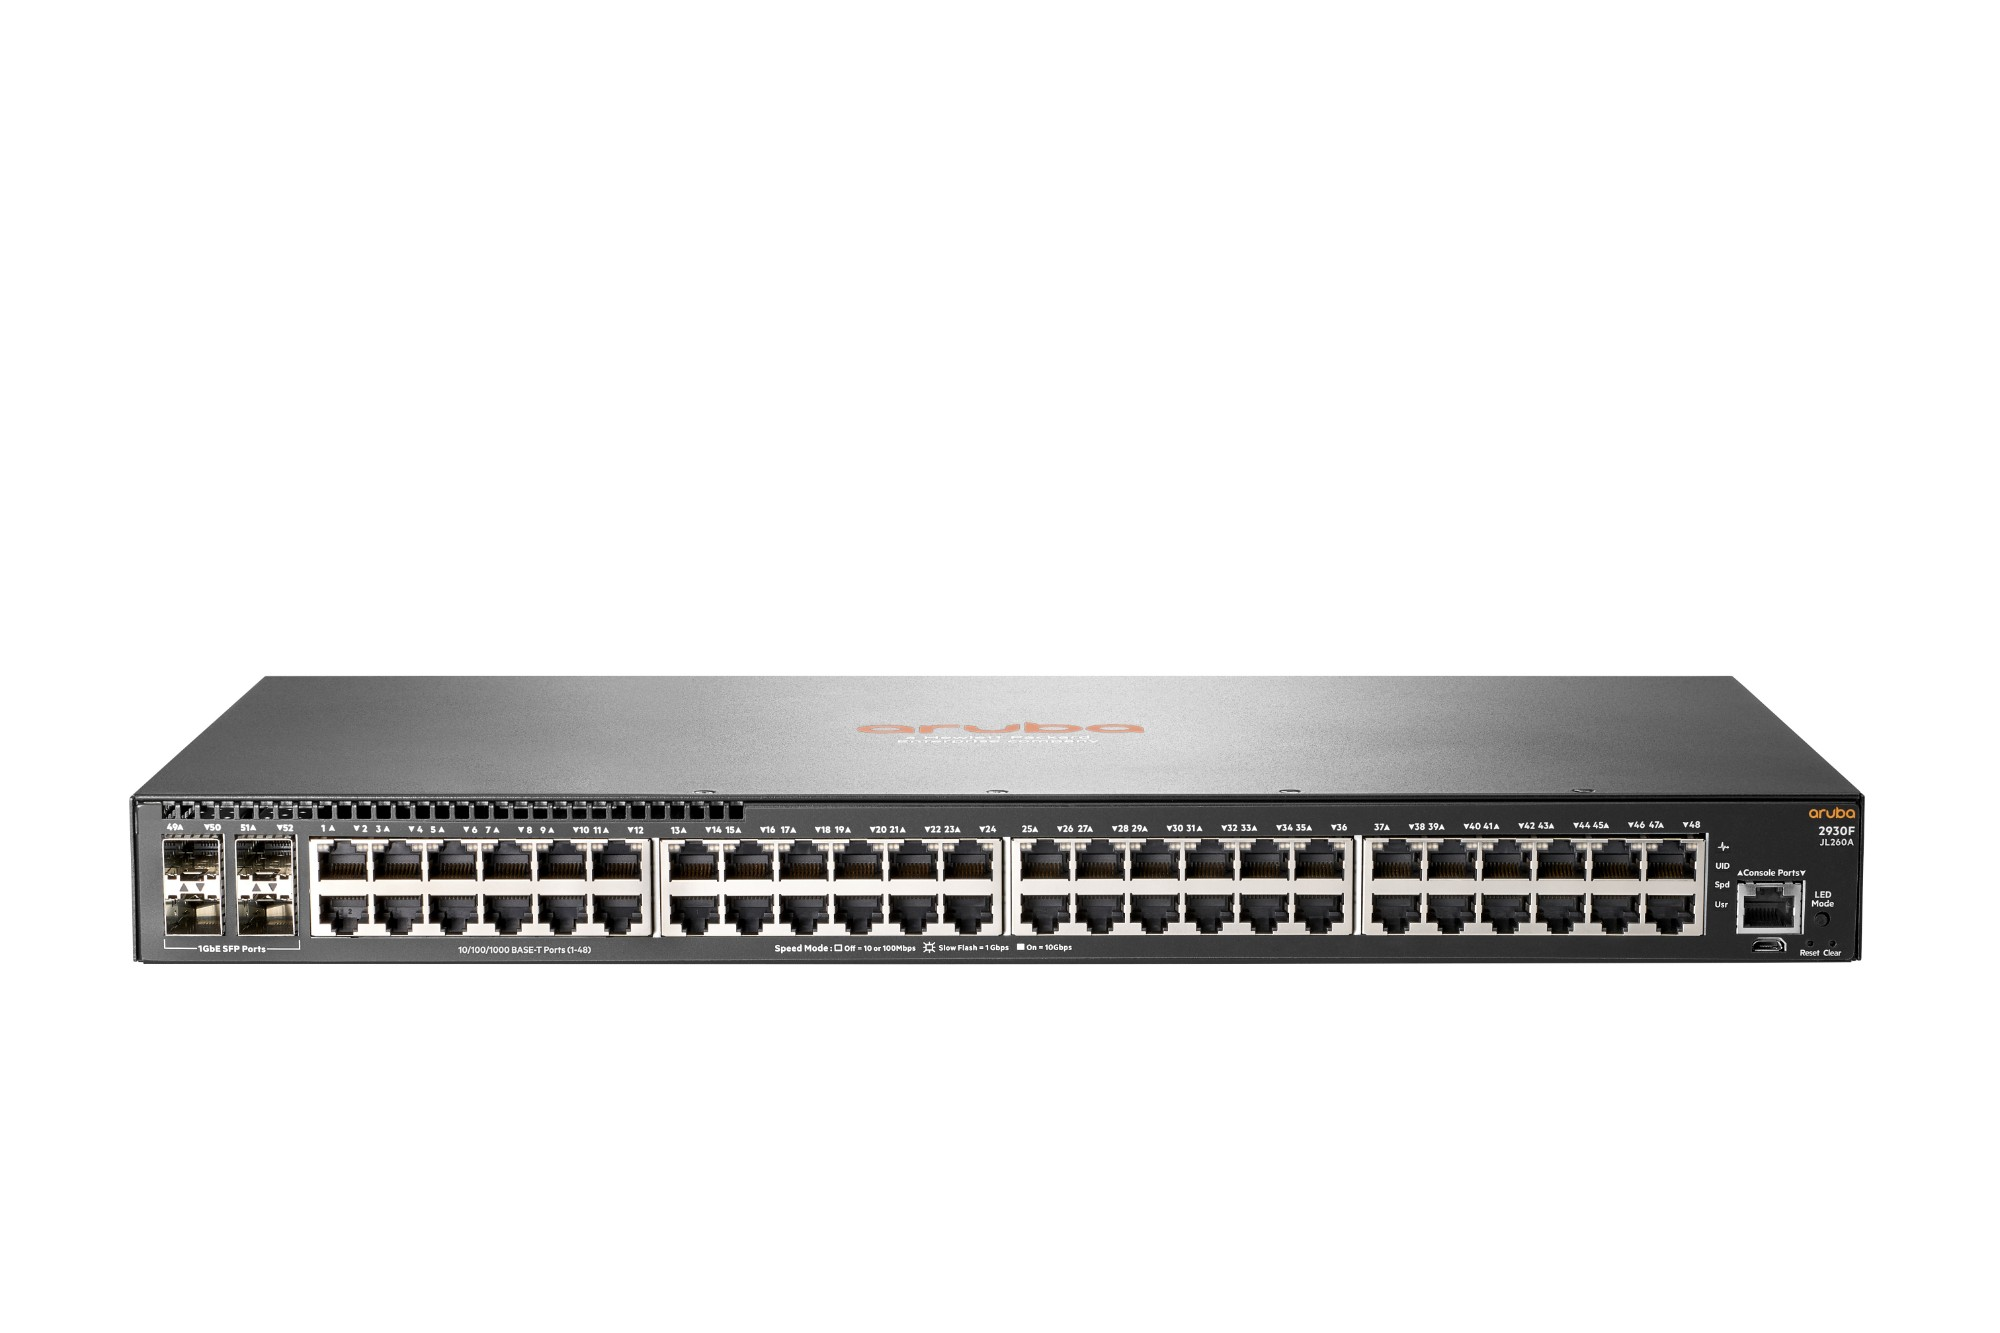 Hewlett Packard Enterprise Aruba 2930F 48G 4SFP Managed network switch L3 Gigabit Ethernet (10/100/1000) 1U Grey